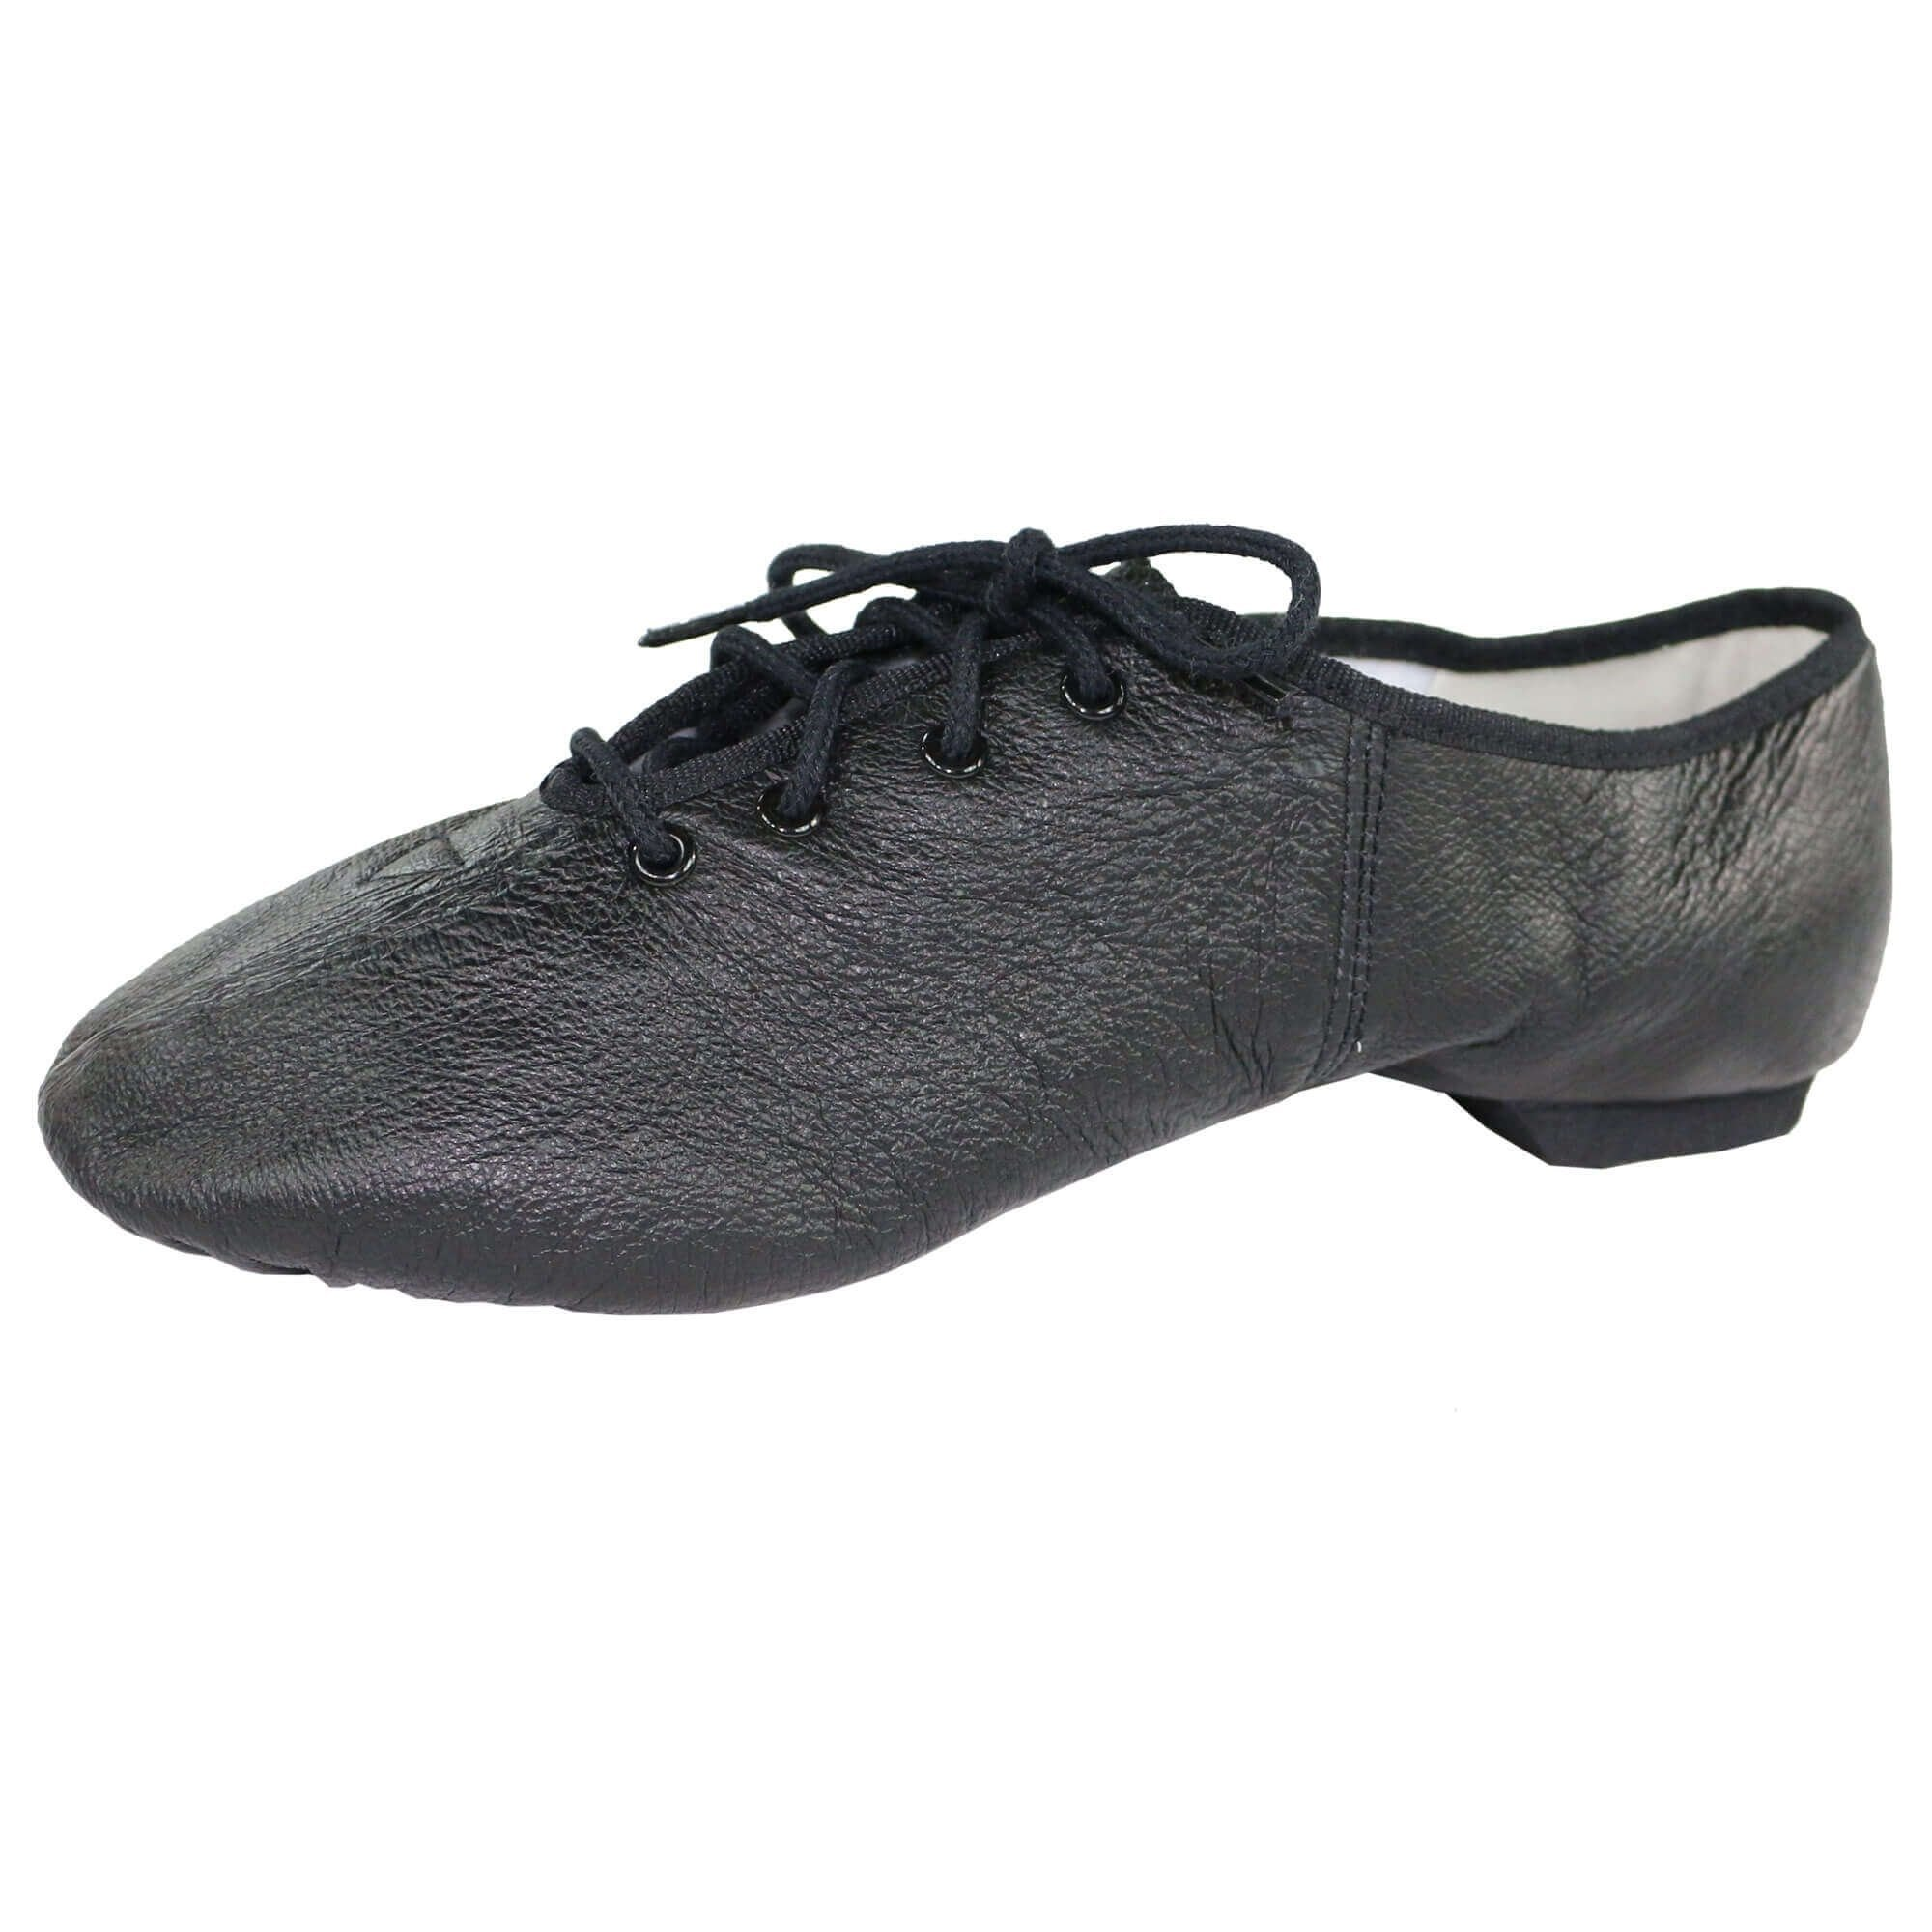 "Danzcue Youth ""Jazzsoft"" Jazz Shoes - Click Image to Close"